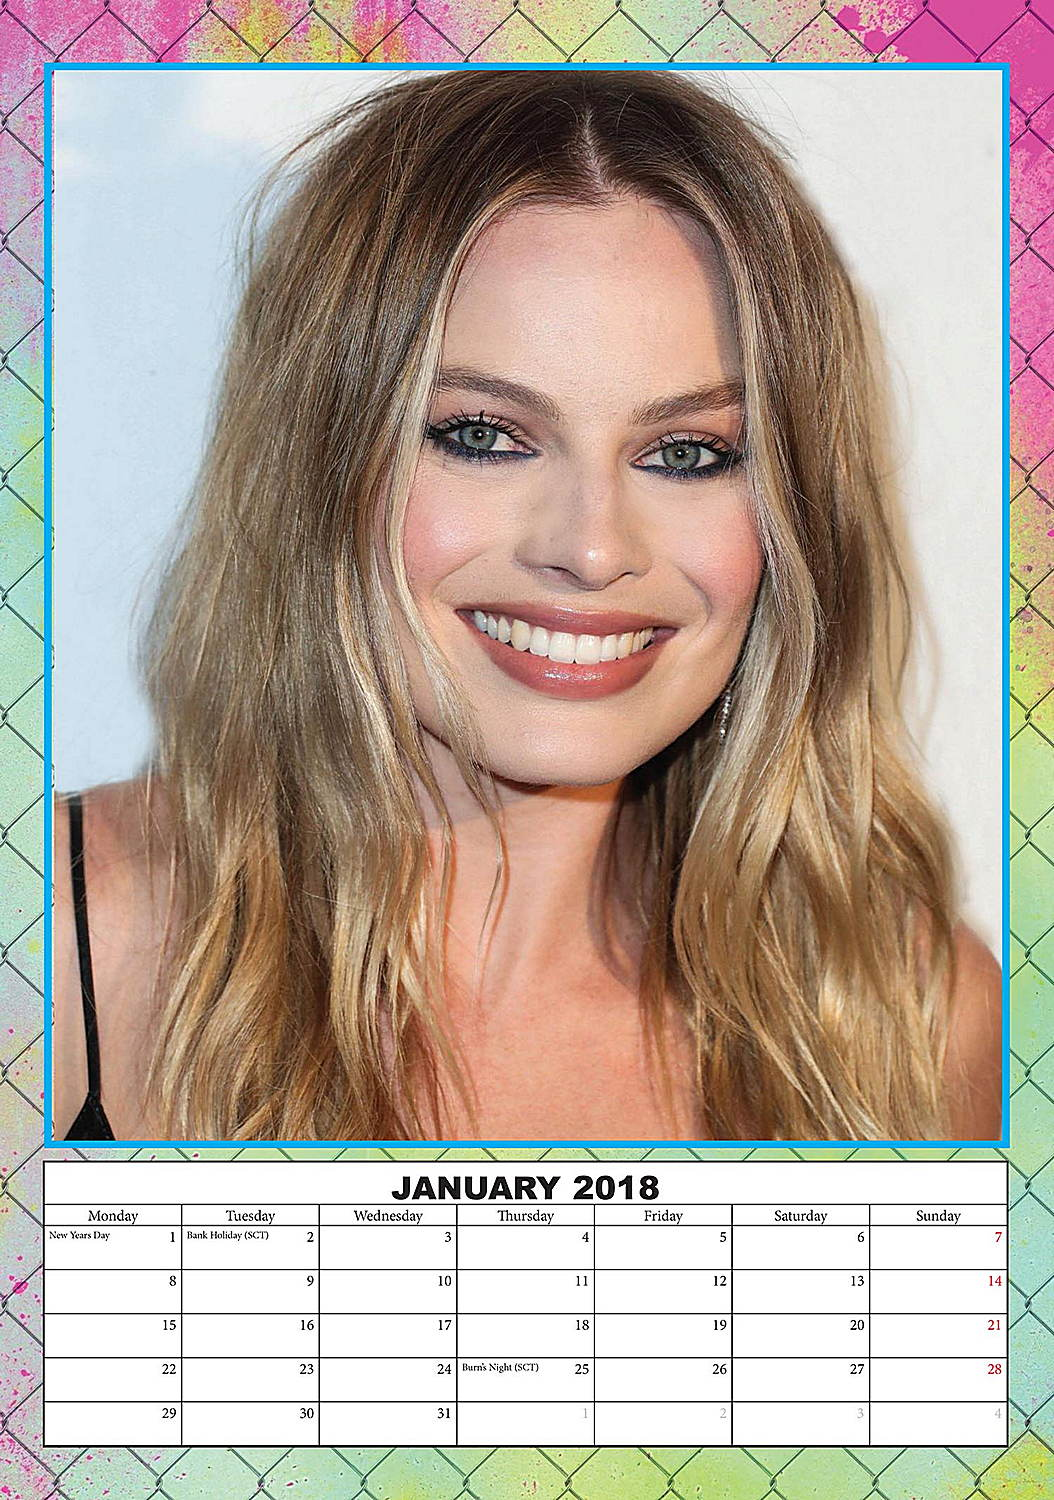 65 Best Celebrity Calendars images in 2019 | 2019 calendar ...